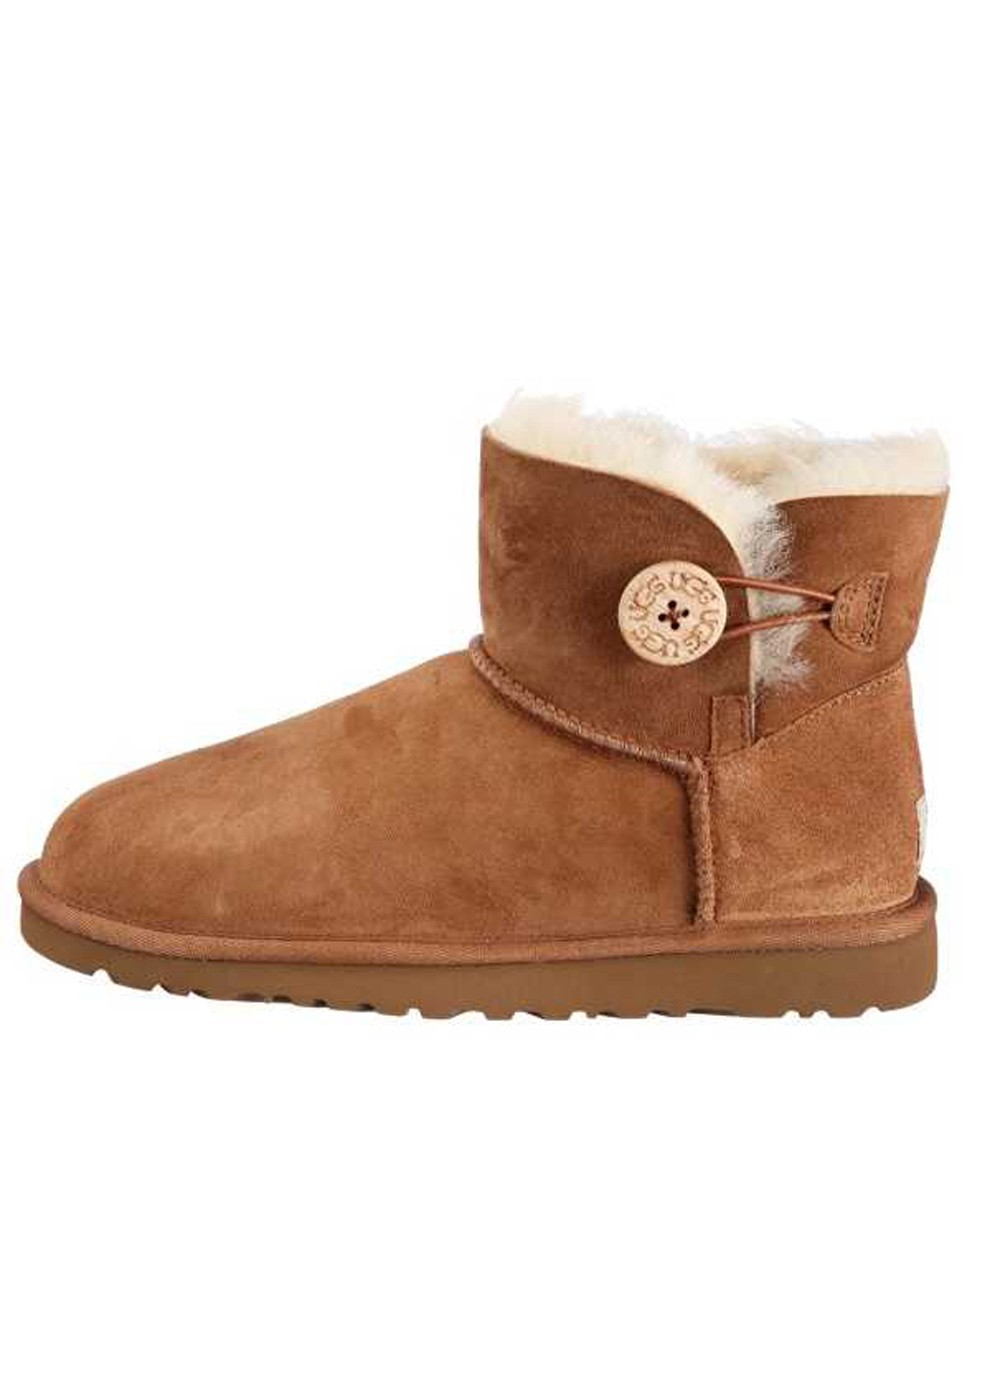 Mini Bailey Button II CHE|チェスナット|ブーツ|UGG|最大30%OFF